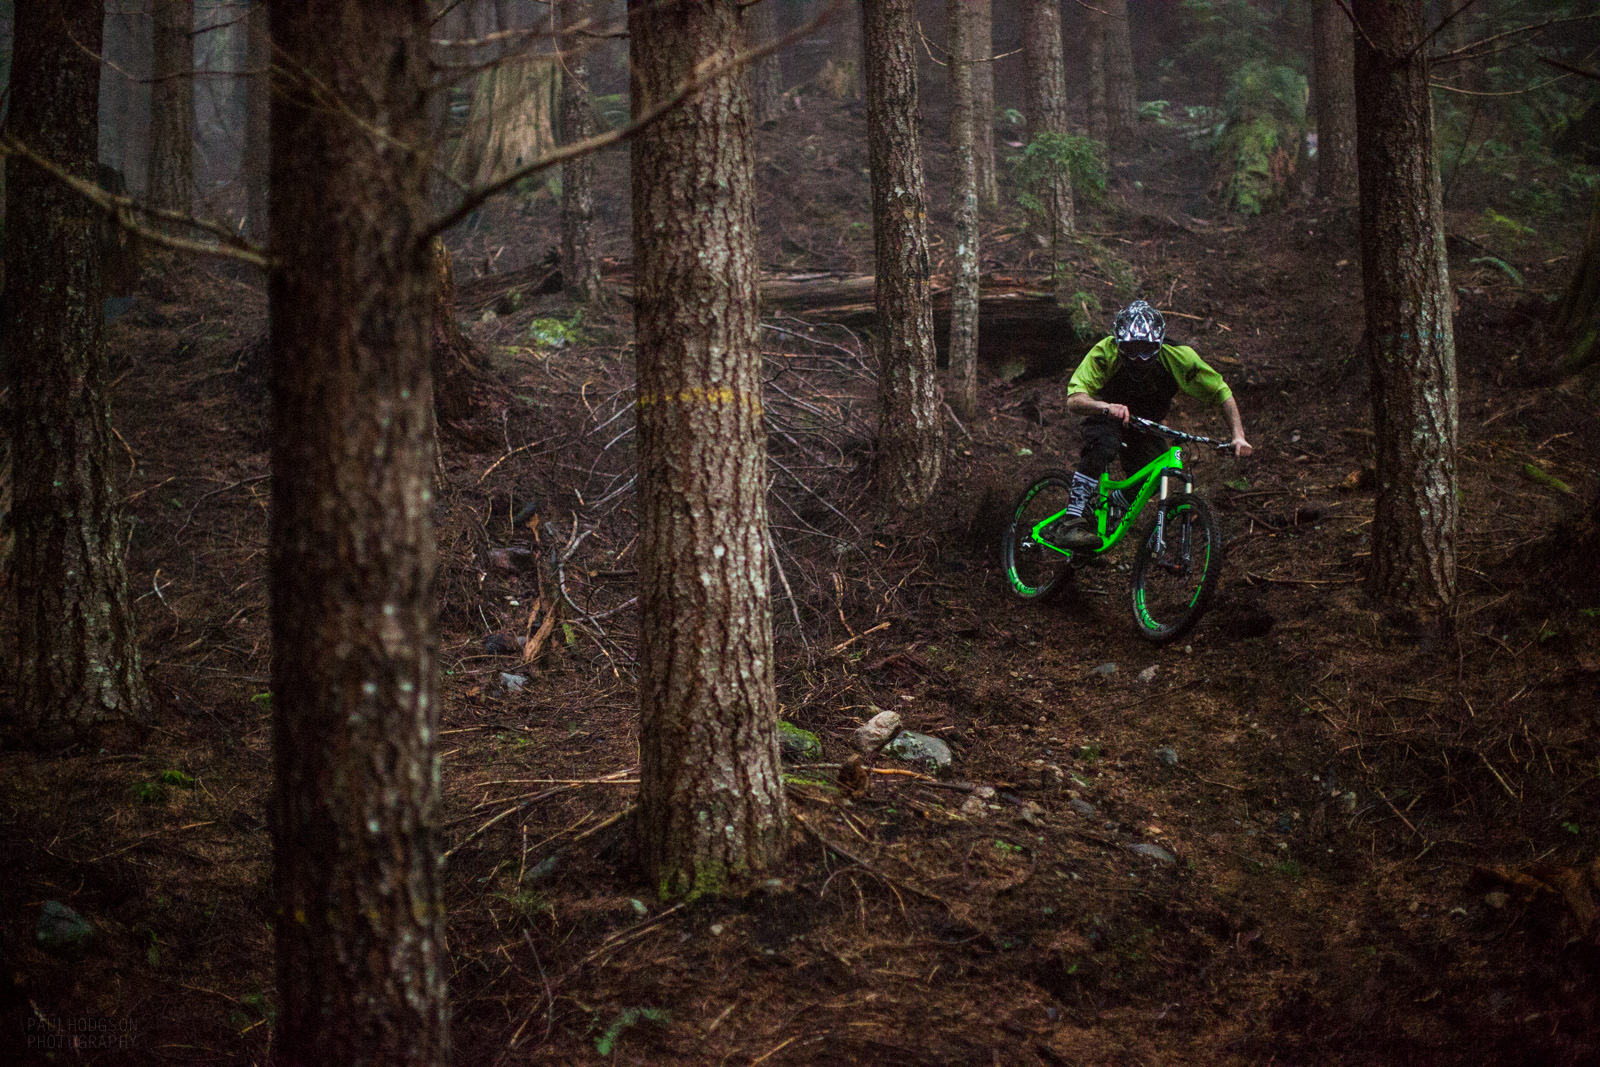 Secret trails are the best trails... Especially when they in da FOG! photo: www.phodgson.com